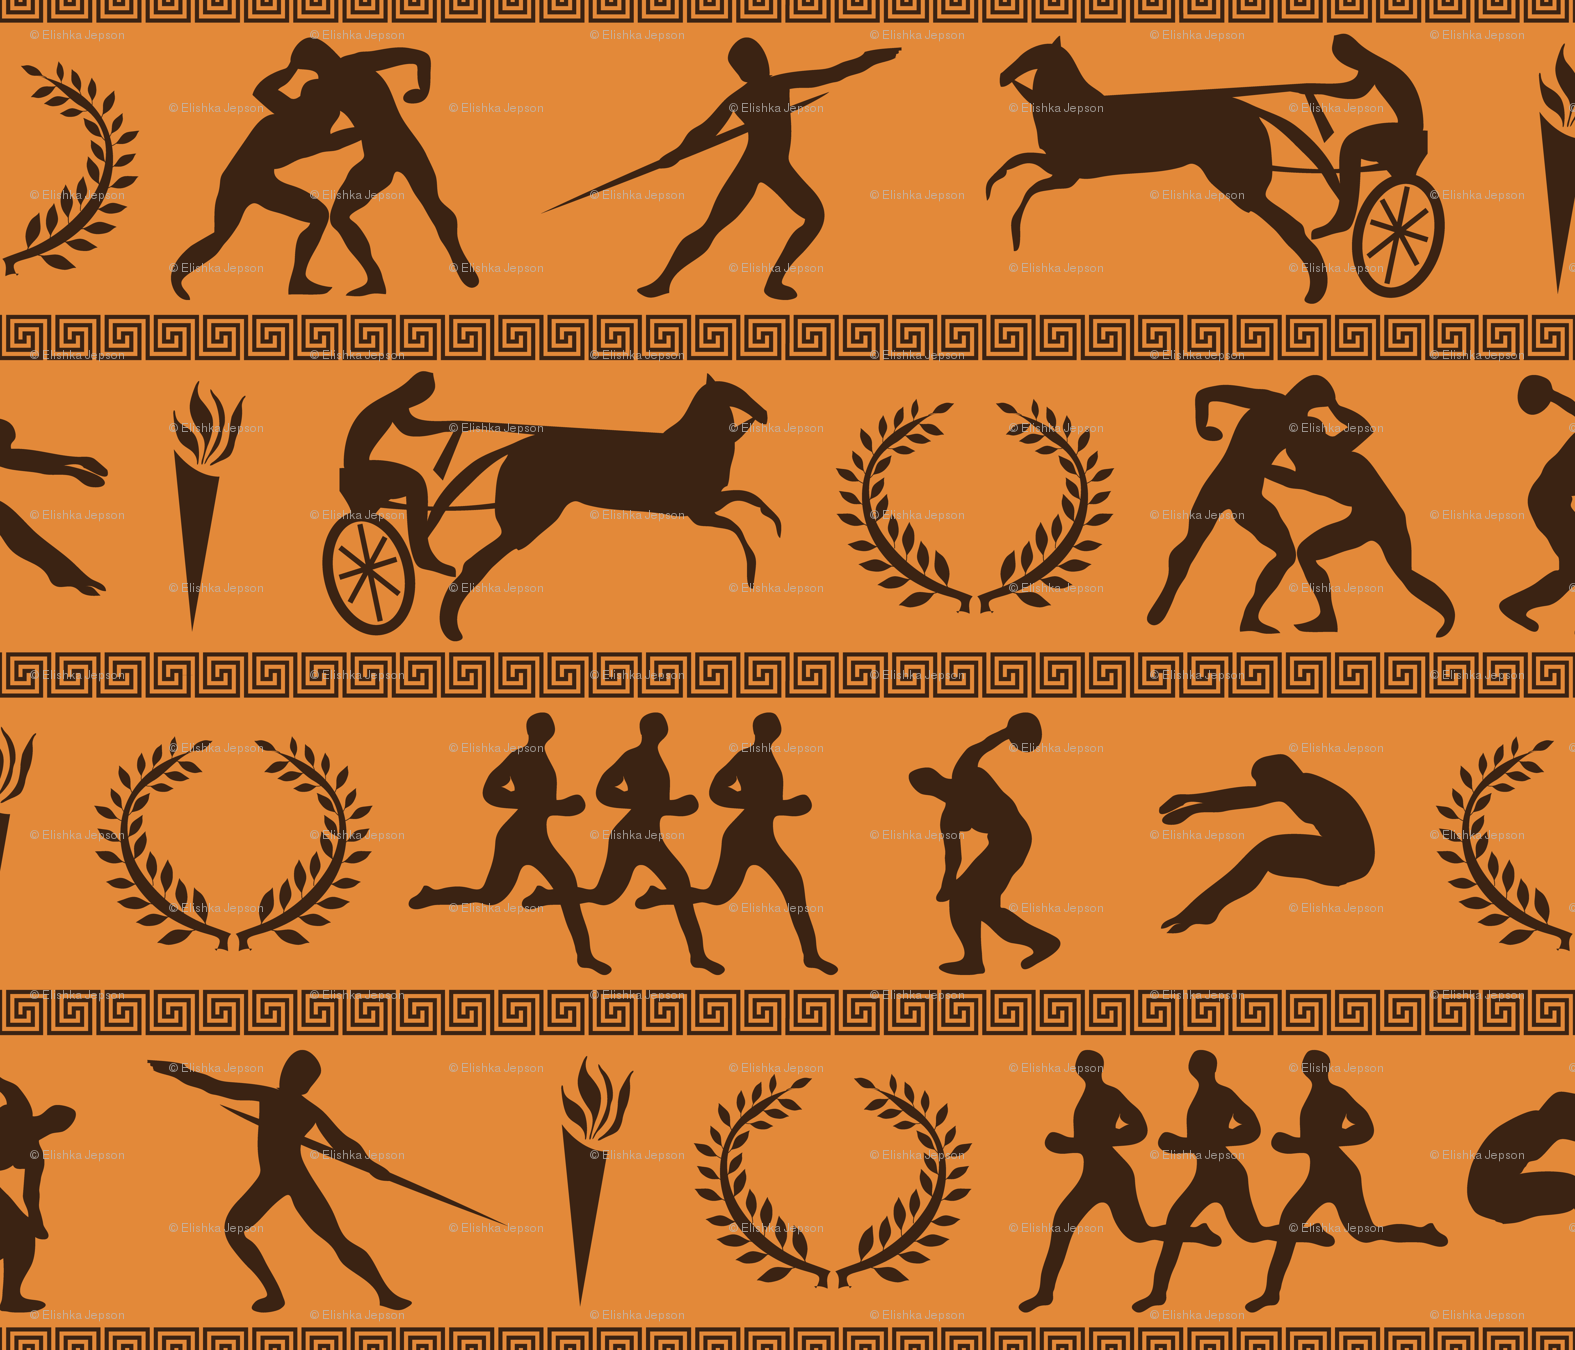 ancient olympics - Google Search … | Pinteres…